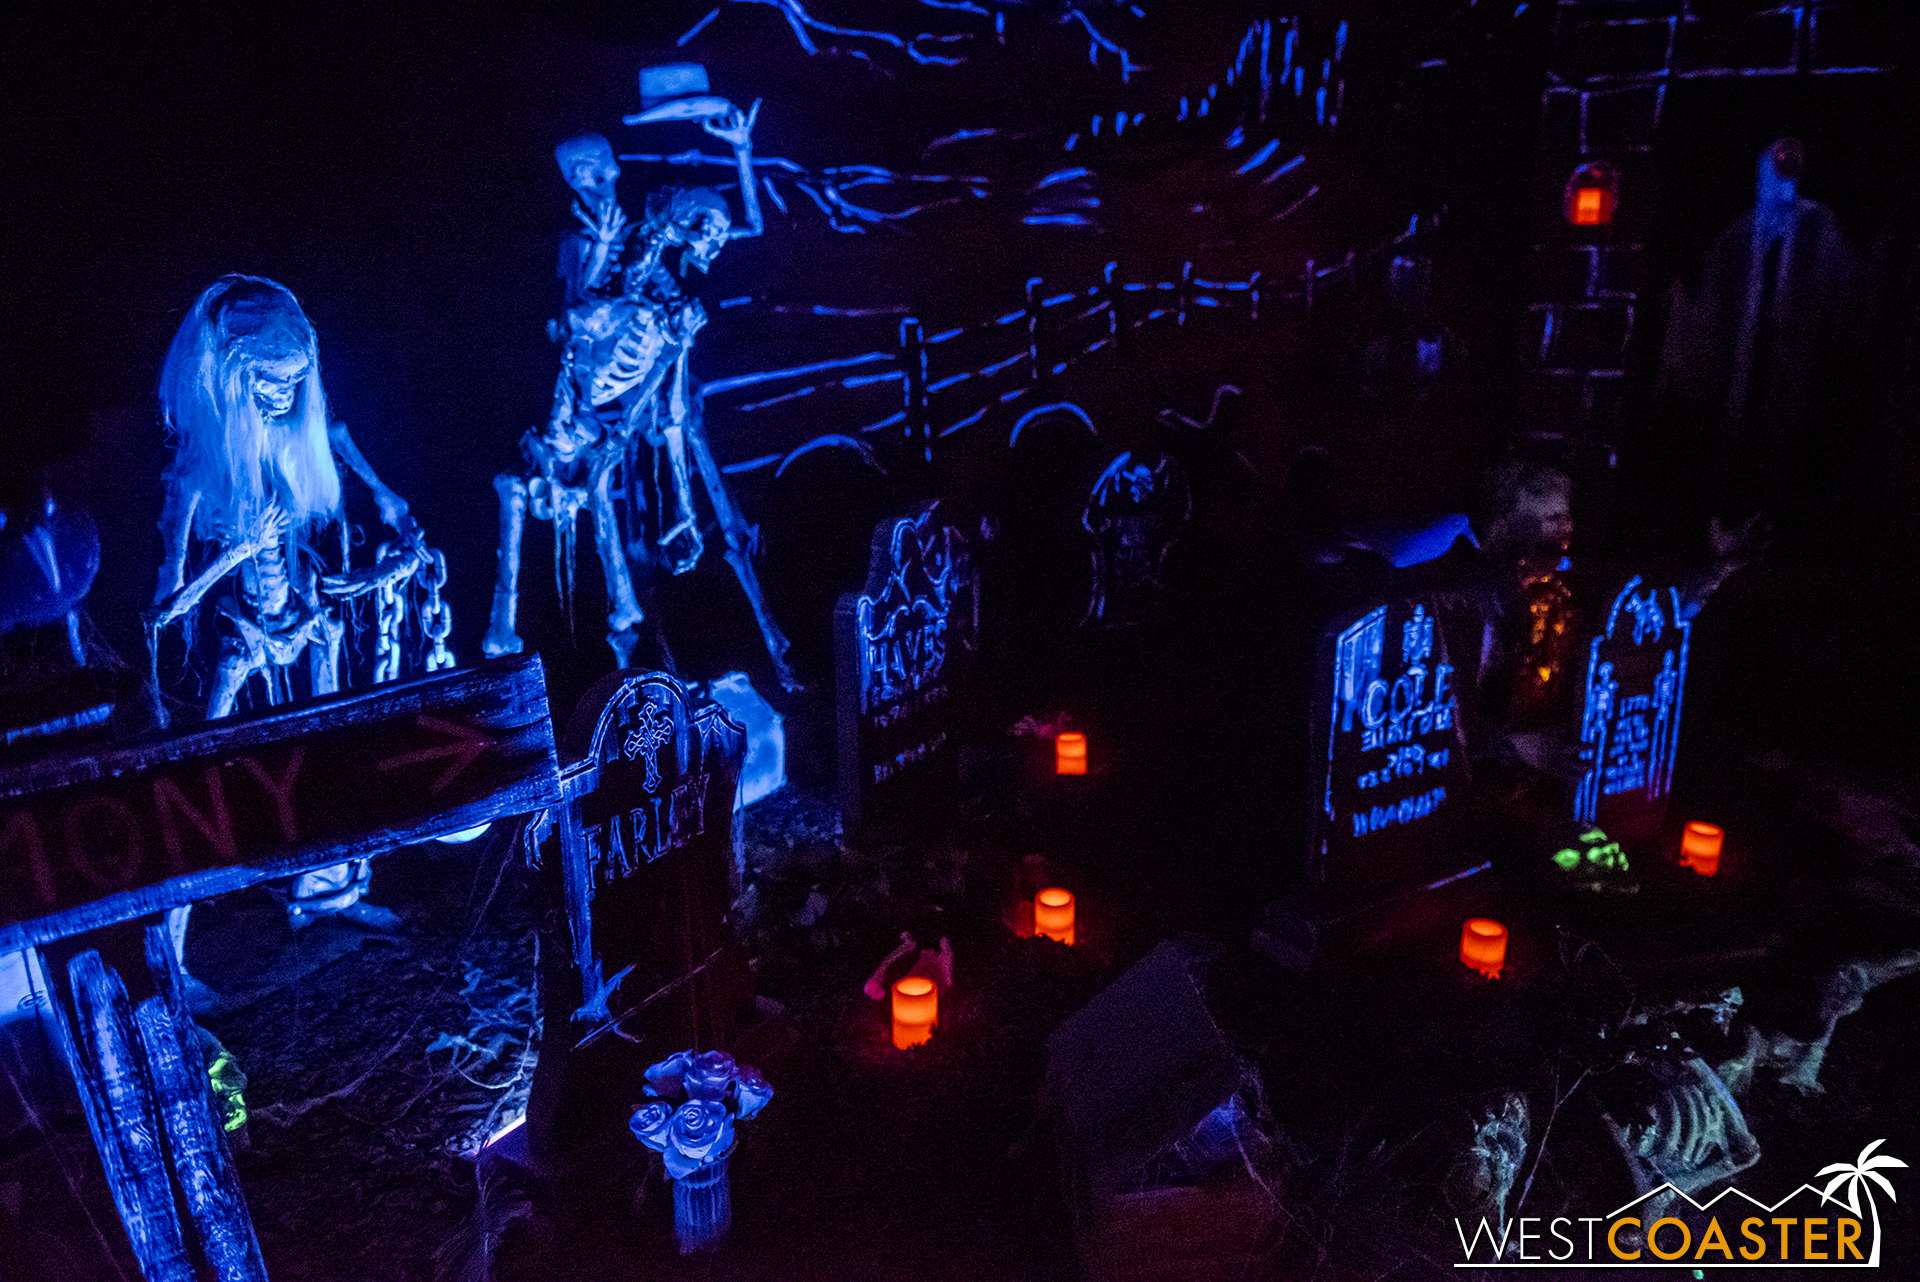 Reign of Terror does not allow  any  photography inside its actual maze, so the following are photos only from its queue.